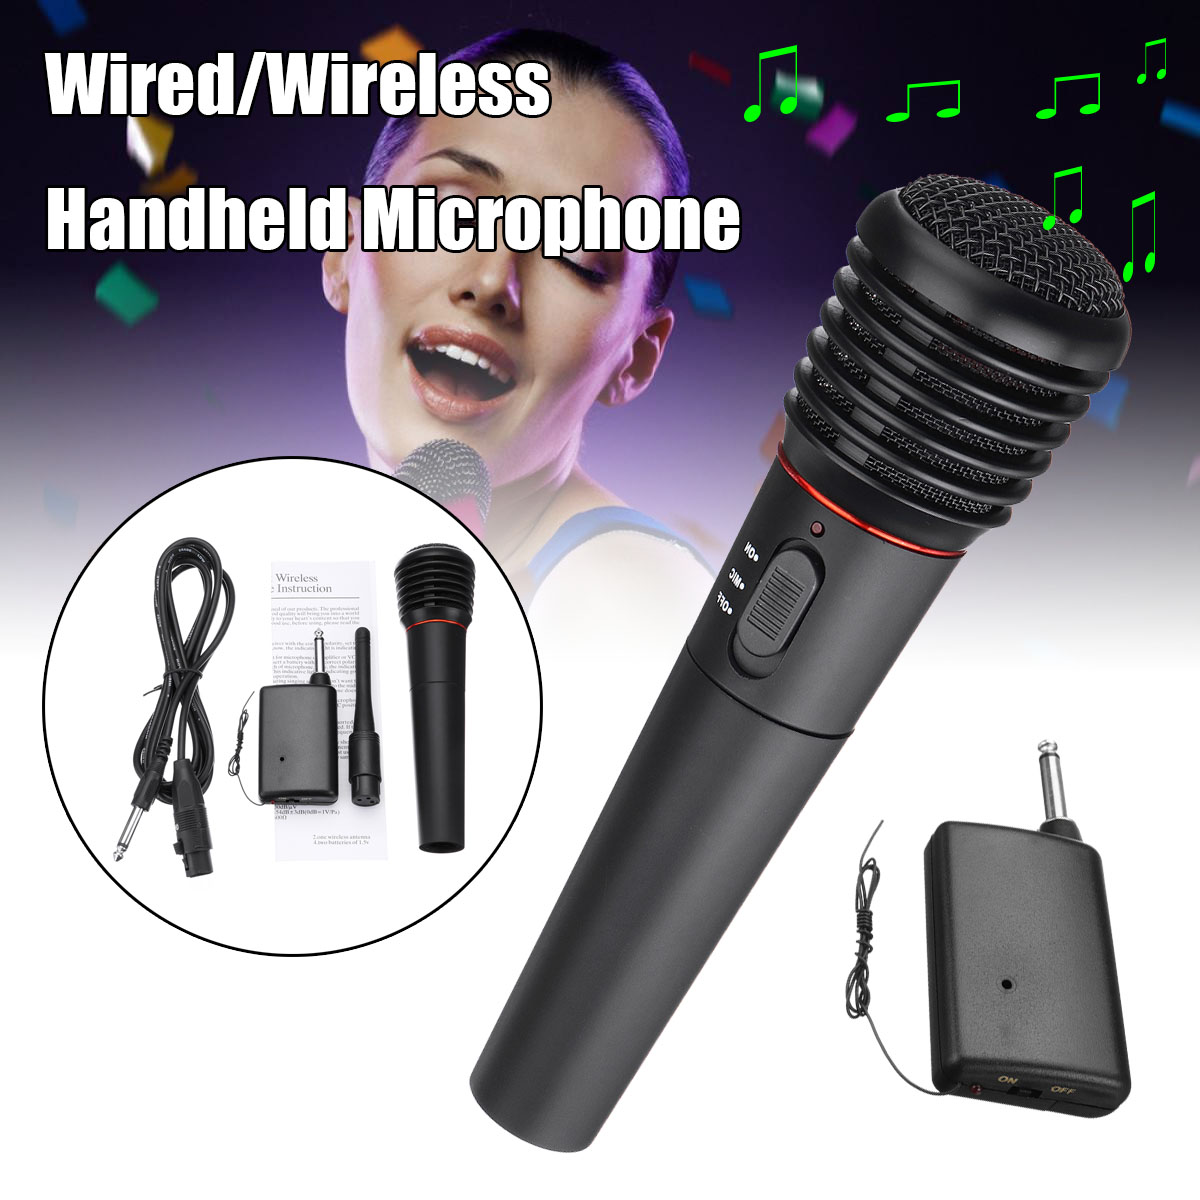 Universal 2in1 Wired Wireless Handheld Microphone Mic Dynamic Cordless For Karaoke KTV Public Speaking Stage Performance